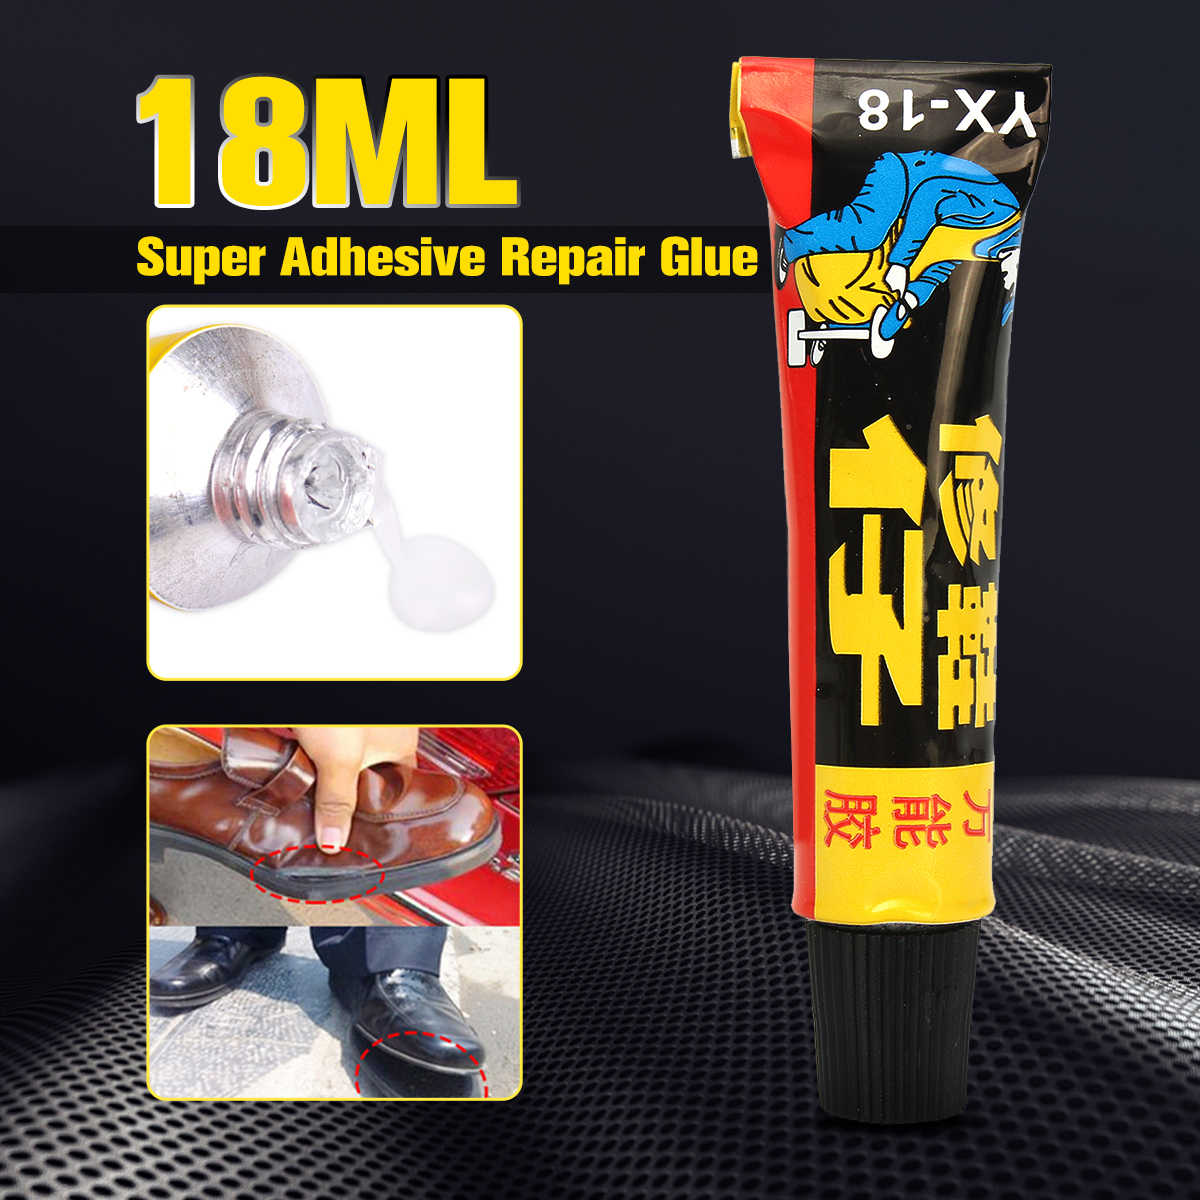 MTGATHER 18ml Super Adhesive Repair Glue For Shoe Leather Rubber Canvas Tube Strong Bond